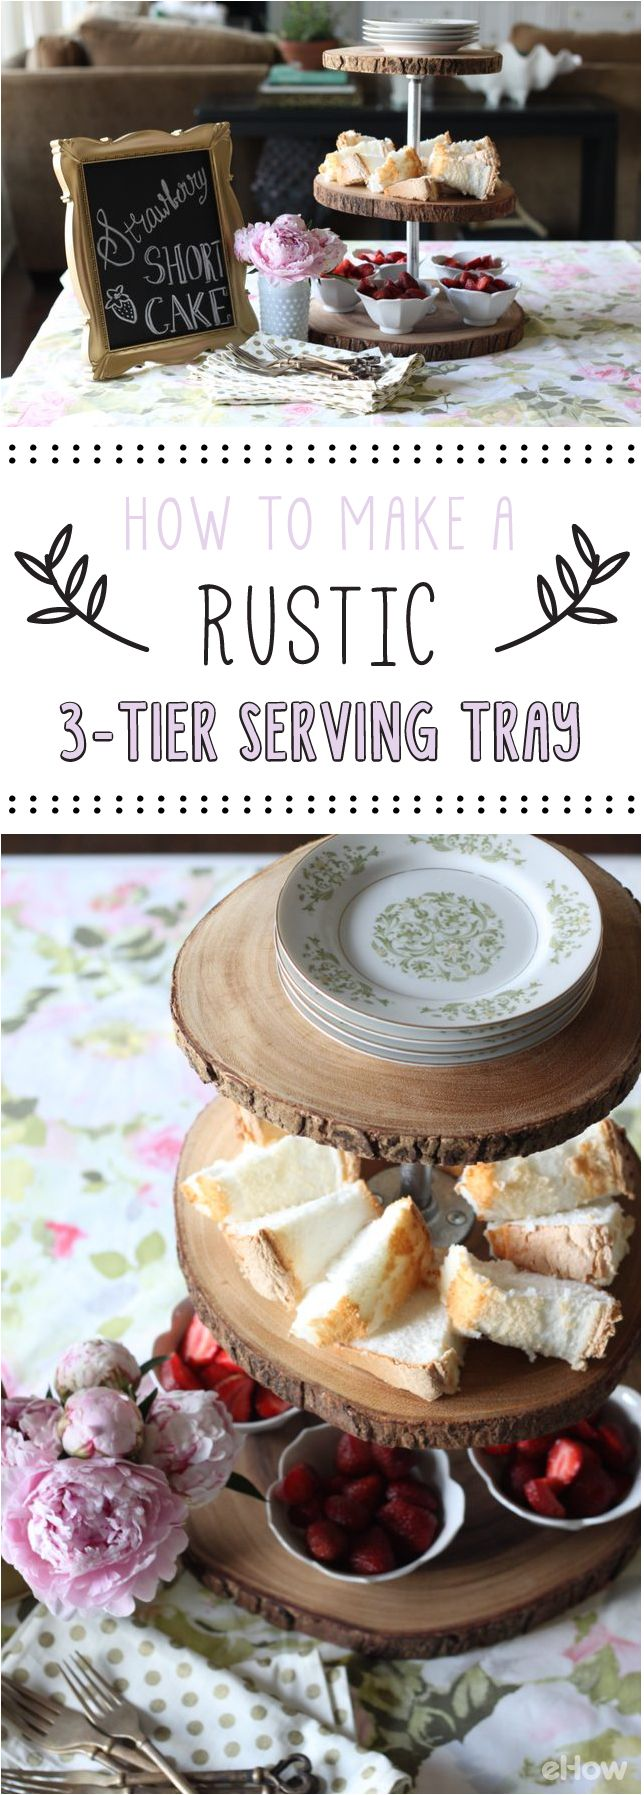 We are so in love with this rustic 3-tier serving tray. It's just as functional as it is beautiful and the DIY is so easy, you just have to do this: http://www.ehow.com/how_12340605_make-rustic-3tier-serving-tray.html?utm_source=pinterest.com&utm_medium=referral&utm_content=freestyle&utm_campaign=fanpage